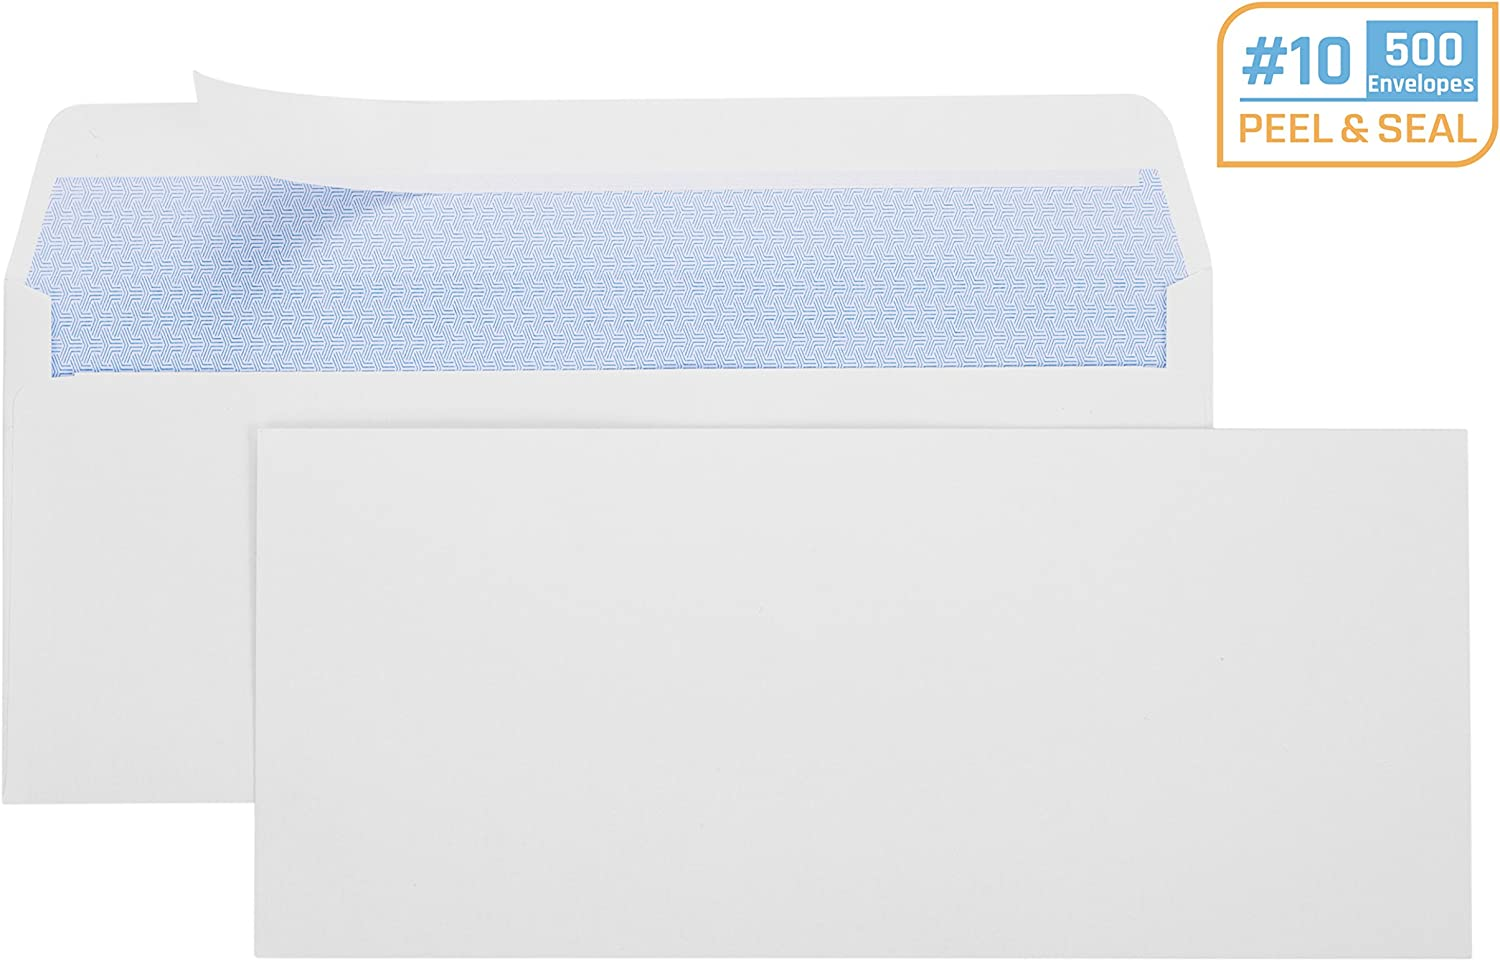 Office Deed 500#10 Envelopes SELF SEAL Business Envelope Windowless Design, Security Tint Pattern for Secure Mailing, Invoices, Statements & Legal Document, 4-1/8 x 9-1/2 Inches : Office Products